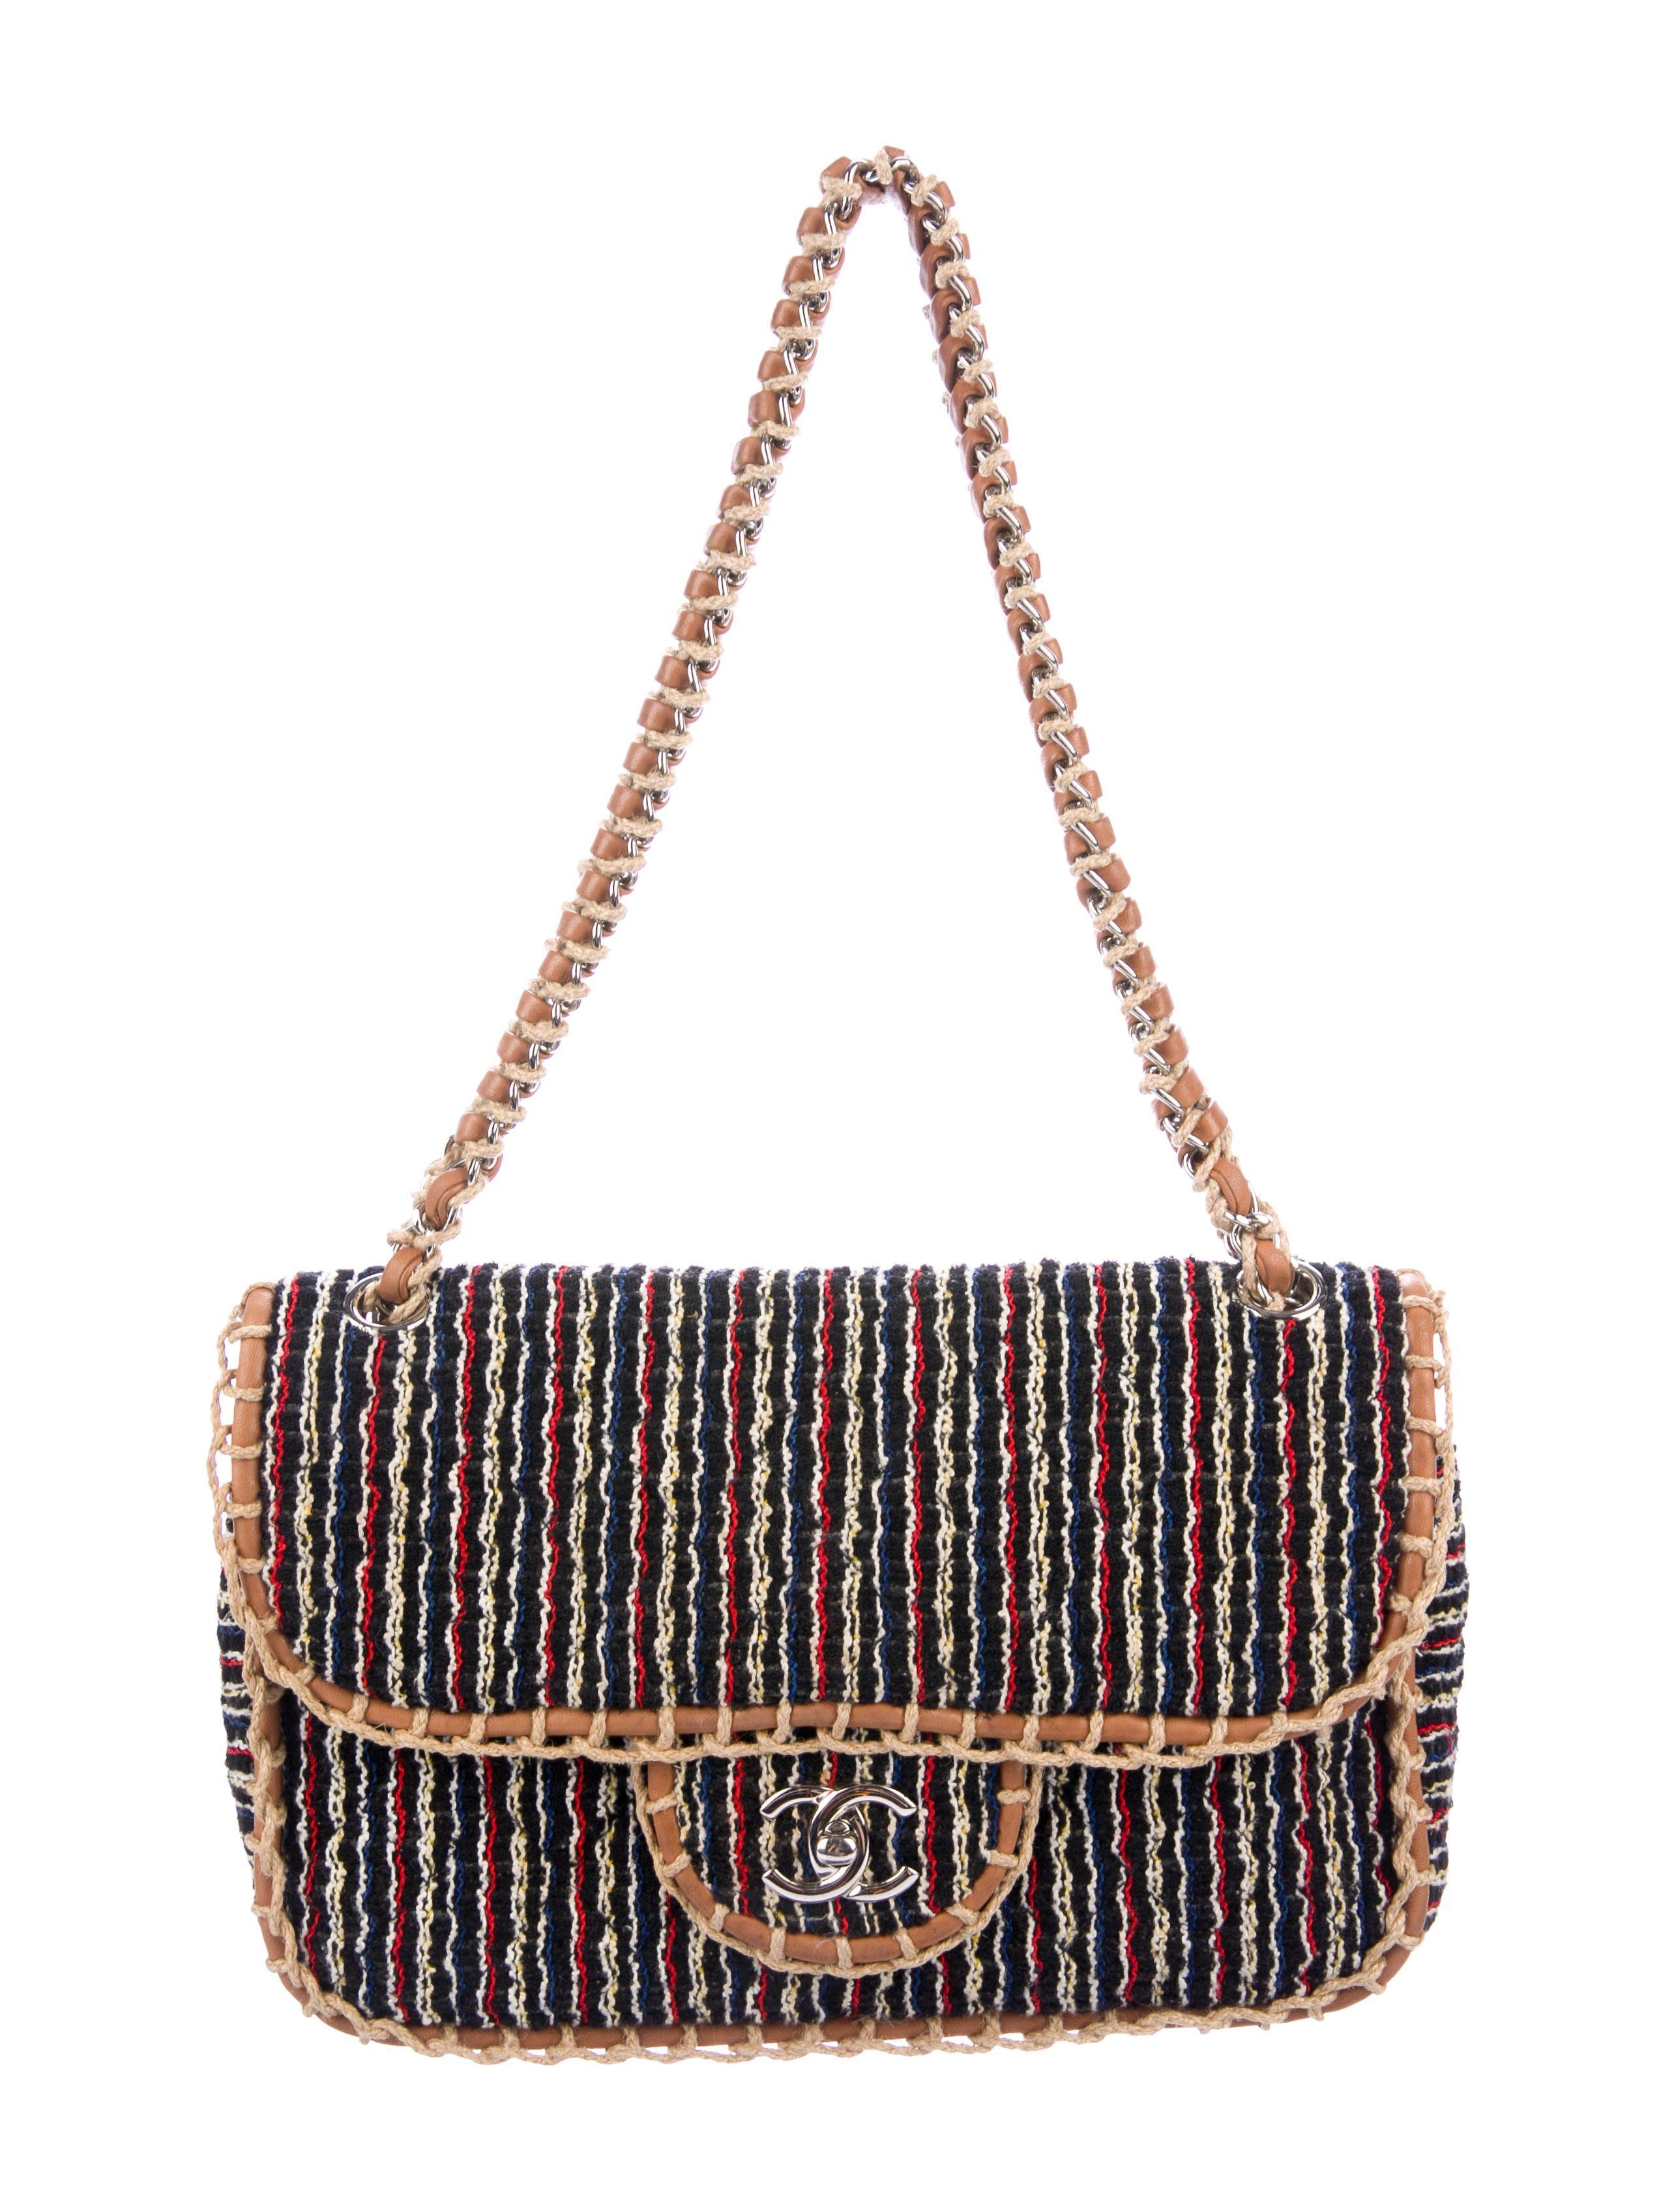 037d242d485762 Black and multicolor quilted tweed Chanel St. Tropez Flap bag with  silver-tone hardware